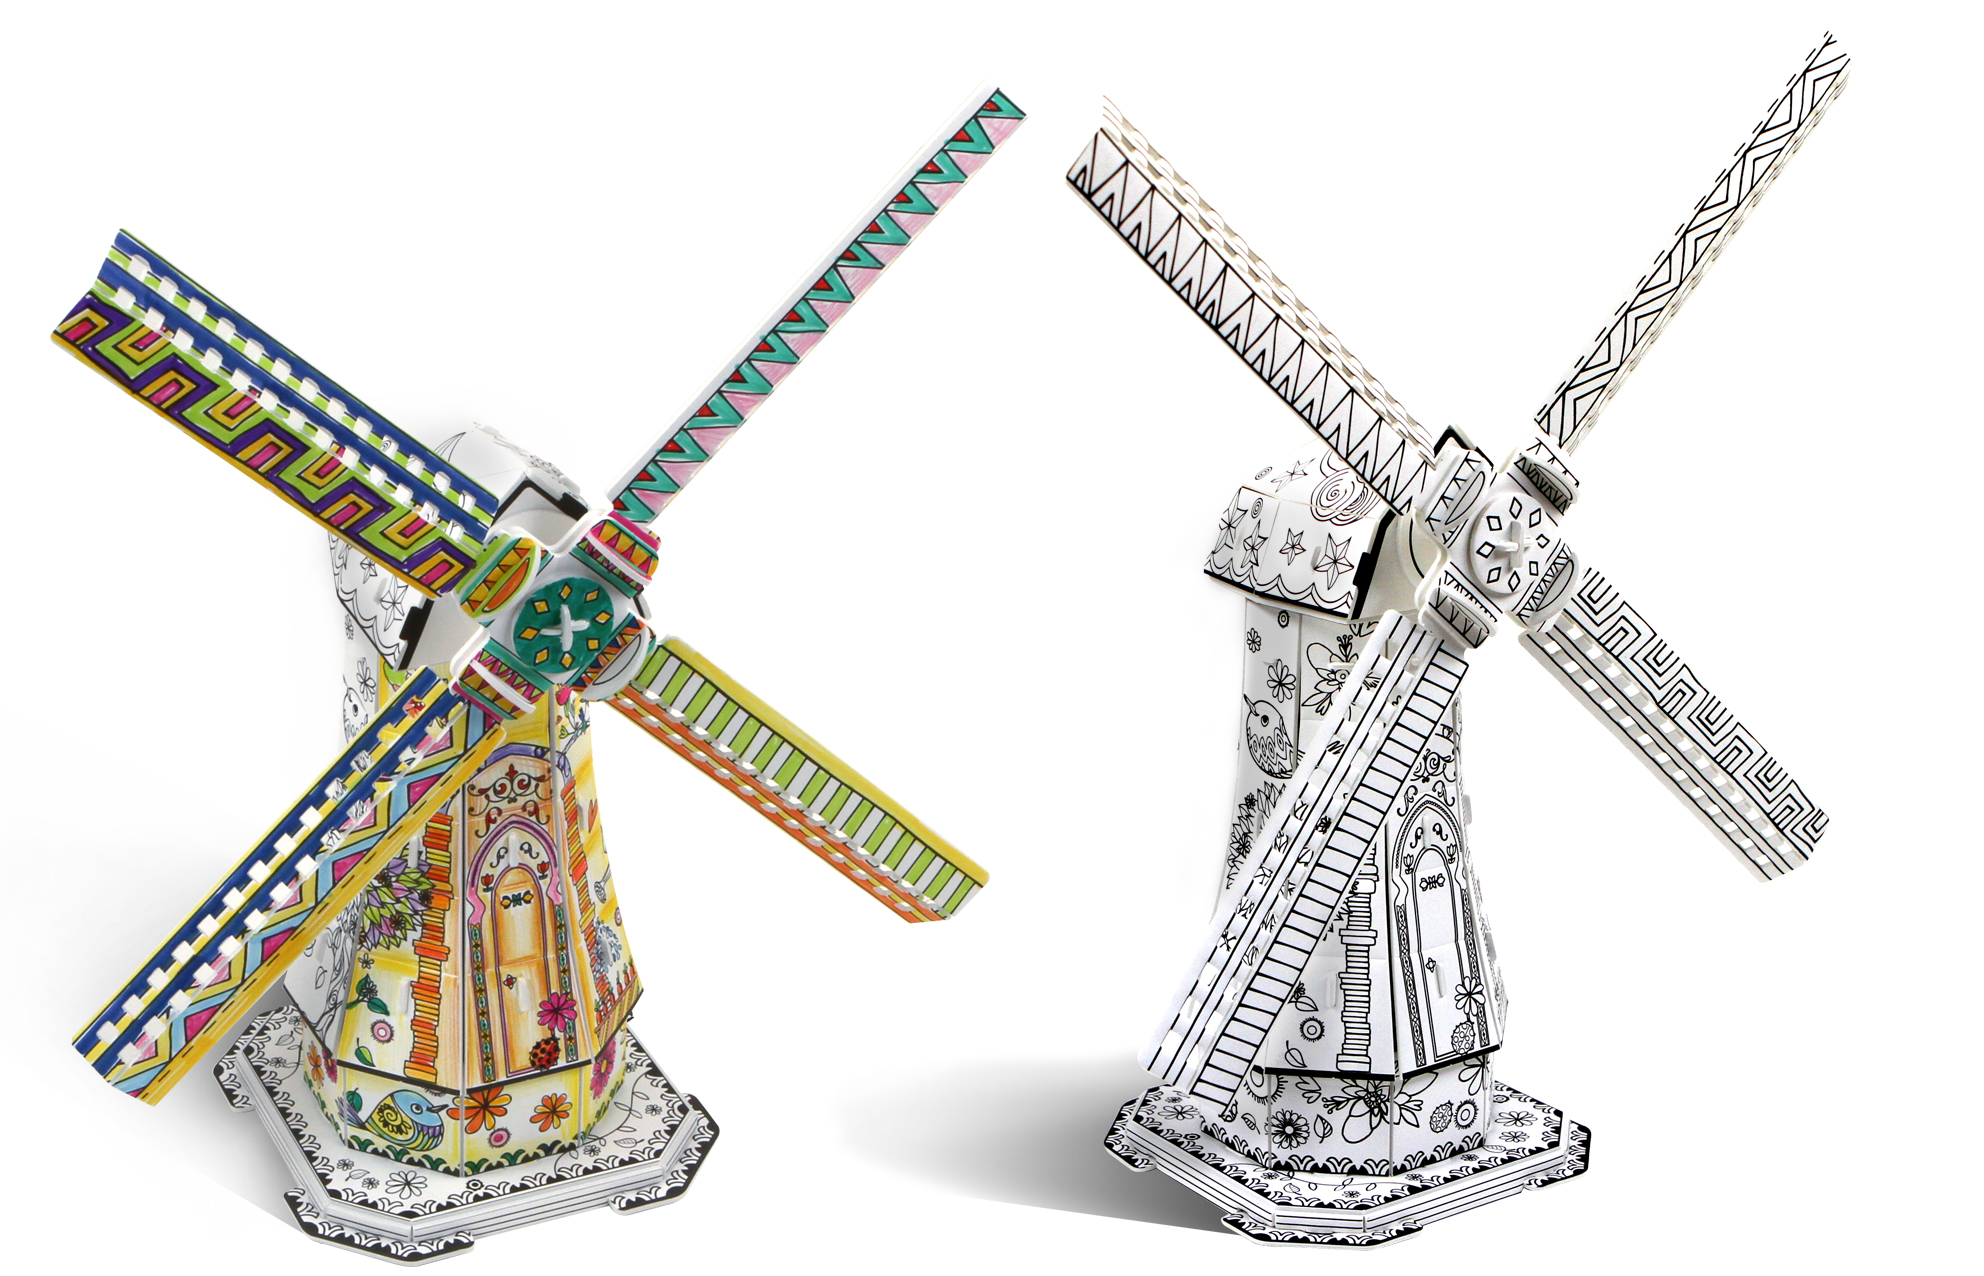 Coloring pages Dutch Windmills | mills | tinkering | creative ... | 1276x1984